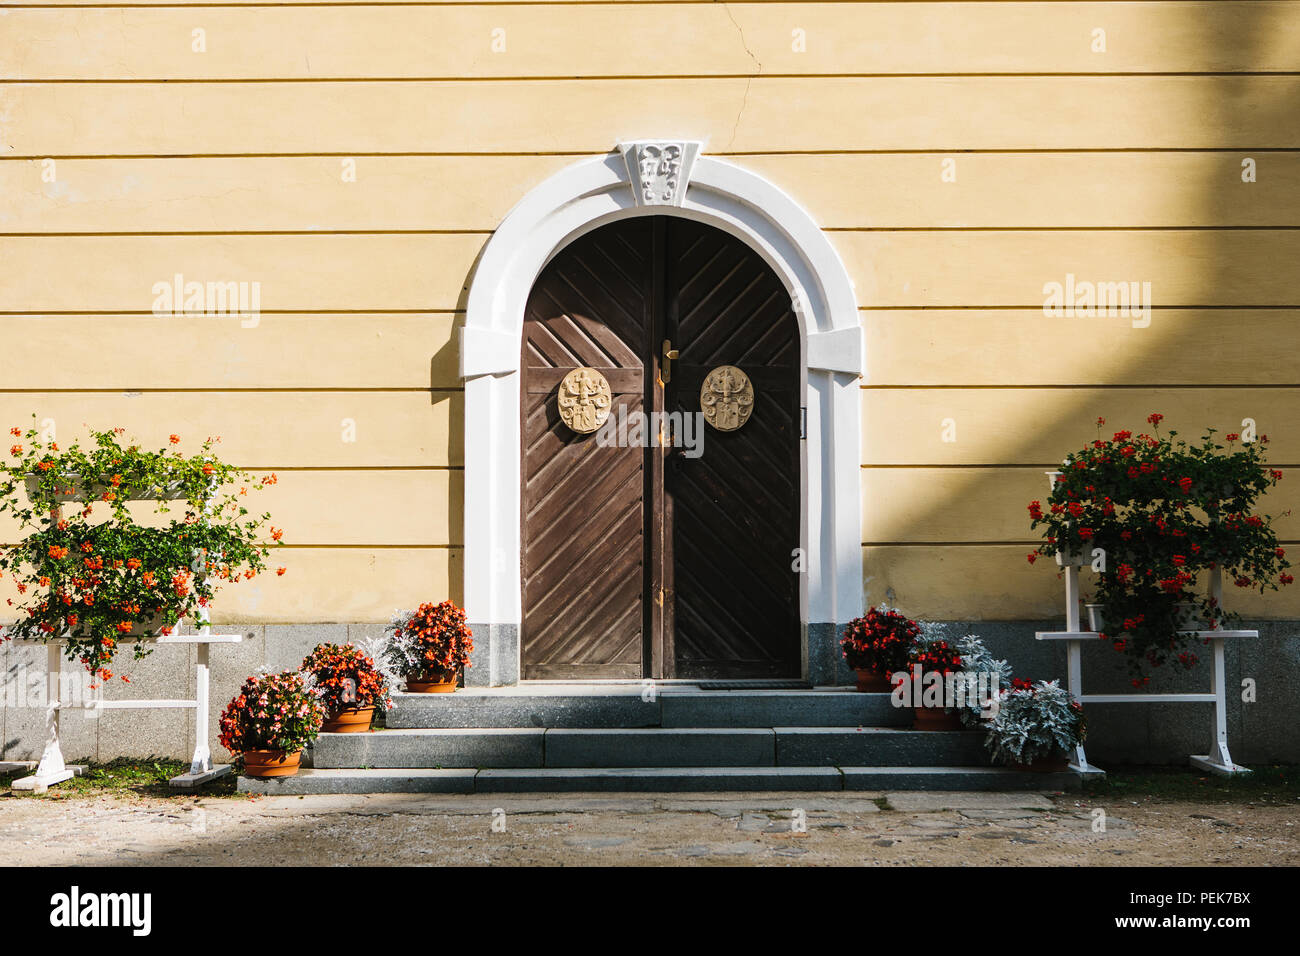 Beautiful arched doors with decorative elements and flower beds in sunny warm day - Stock Image